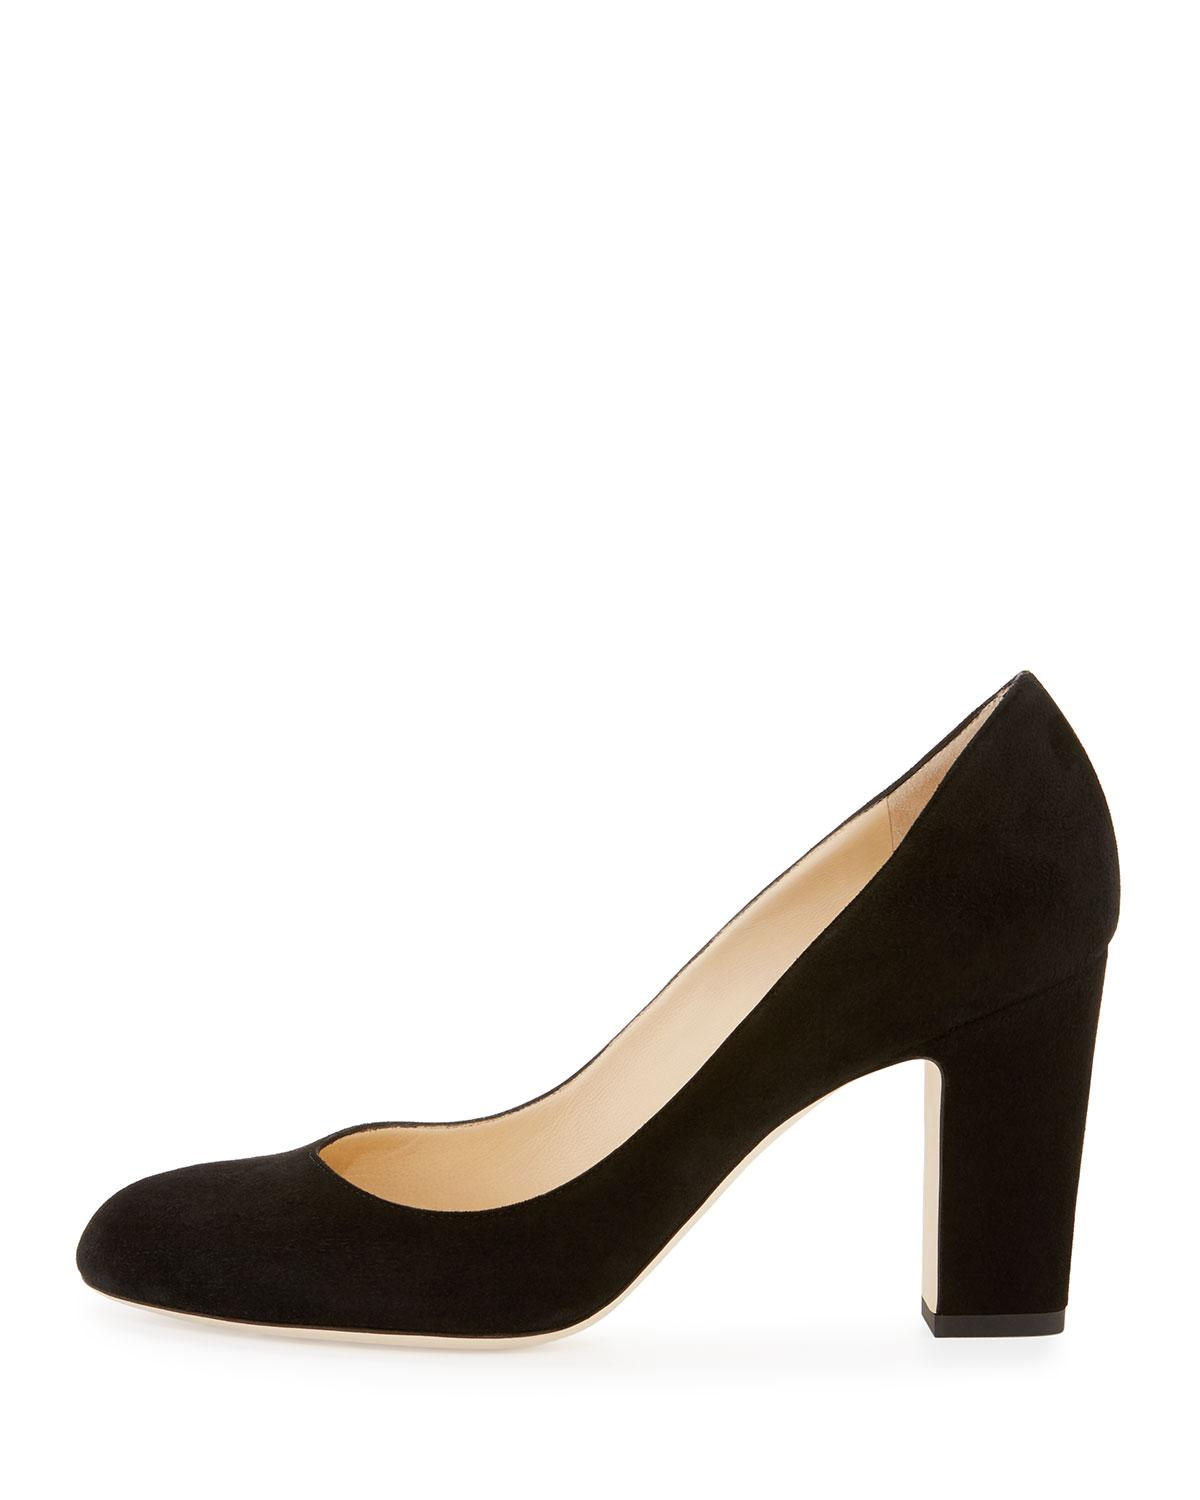 1b73cbd42613 Lyst - Jimmy Choo Billie Suede Block-heel Pump in Black